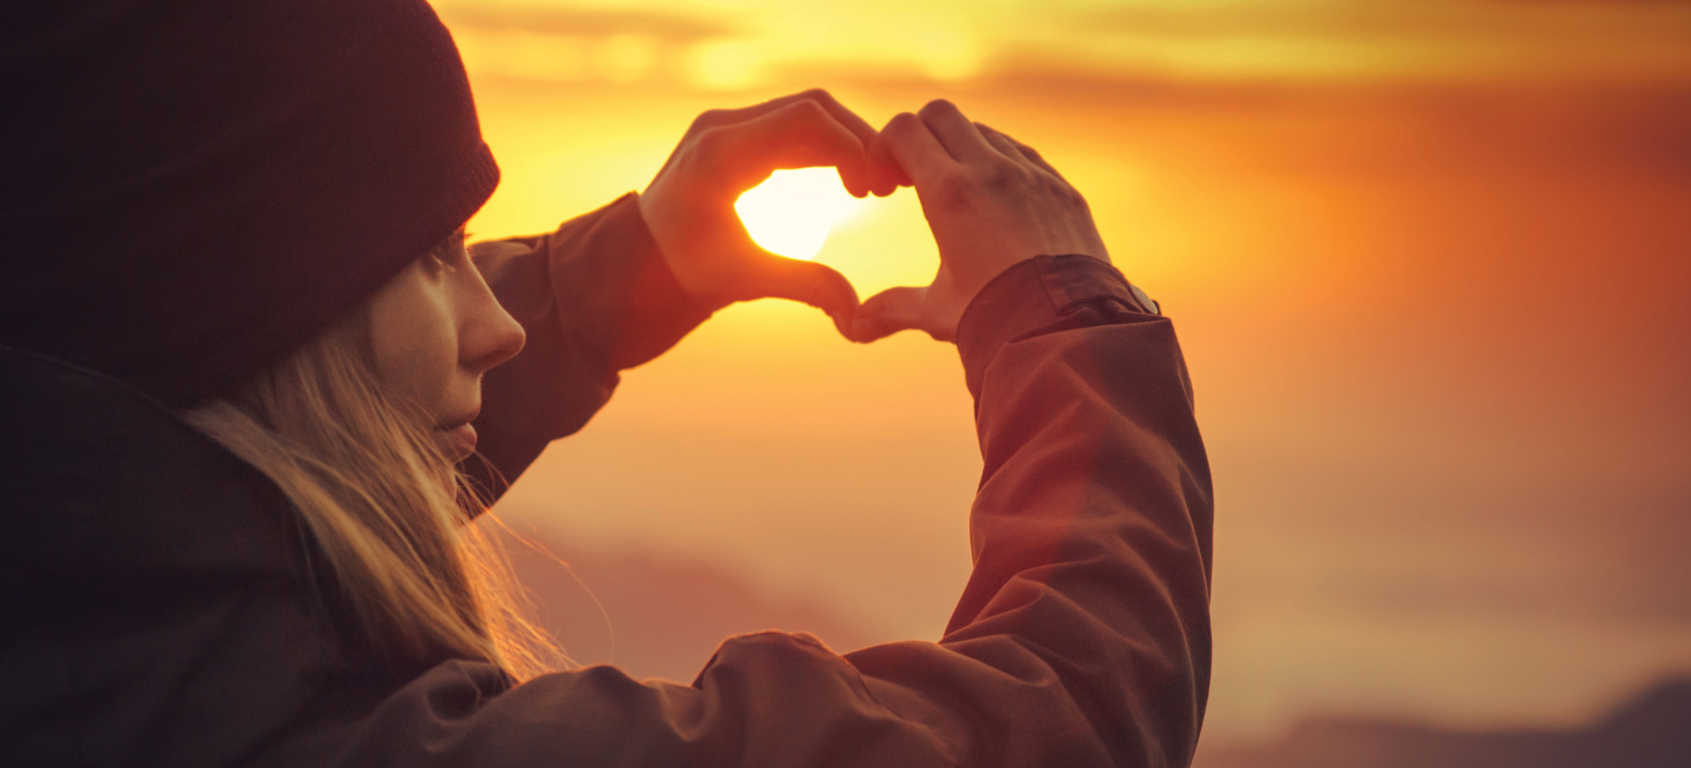 Women making a heart with her hands in front of an orange sunset in honor of May's Mental Health Awareness Month.